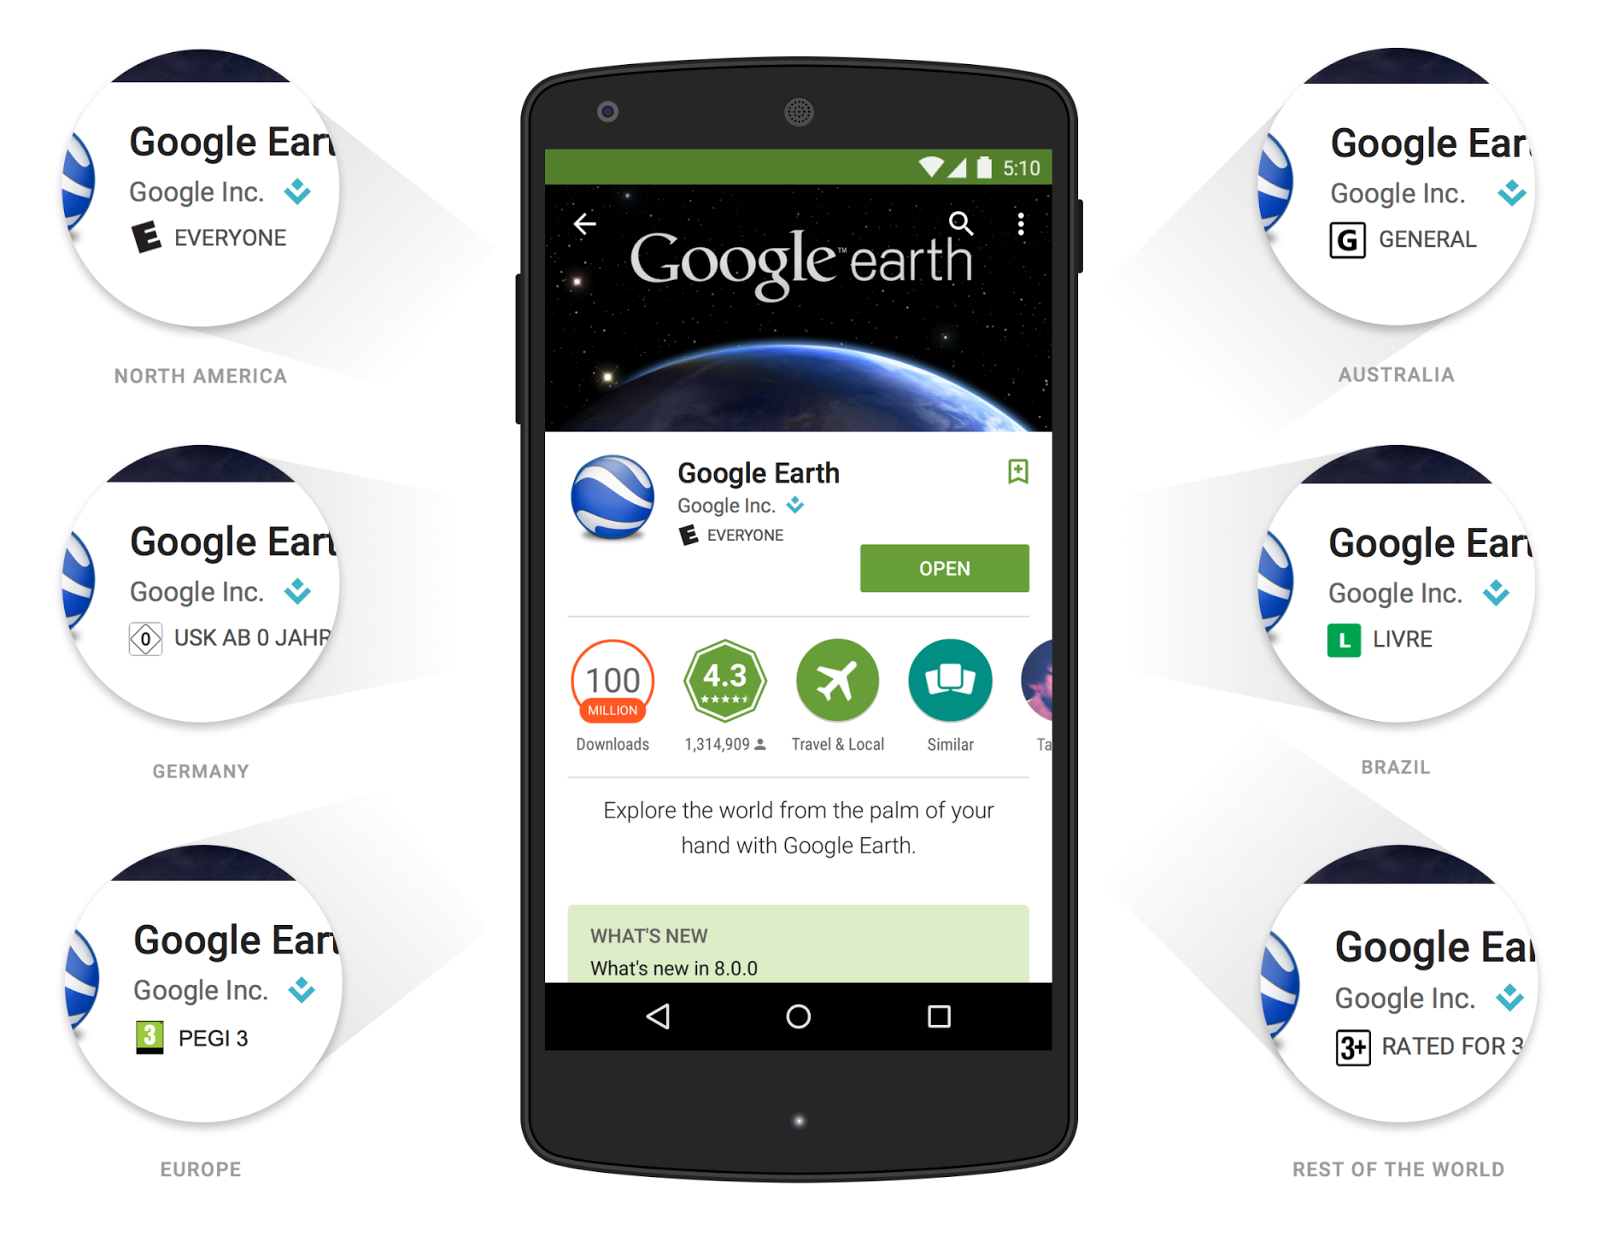 Google Play's New App Ratings System